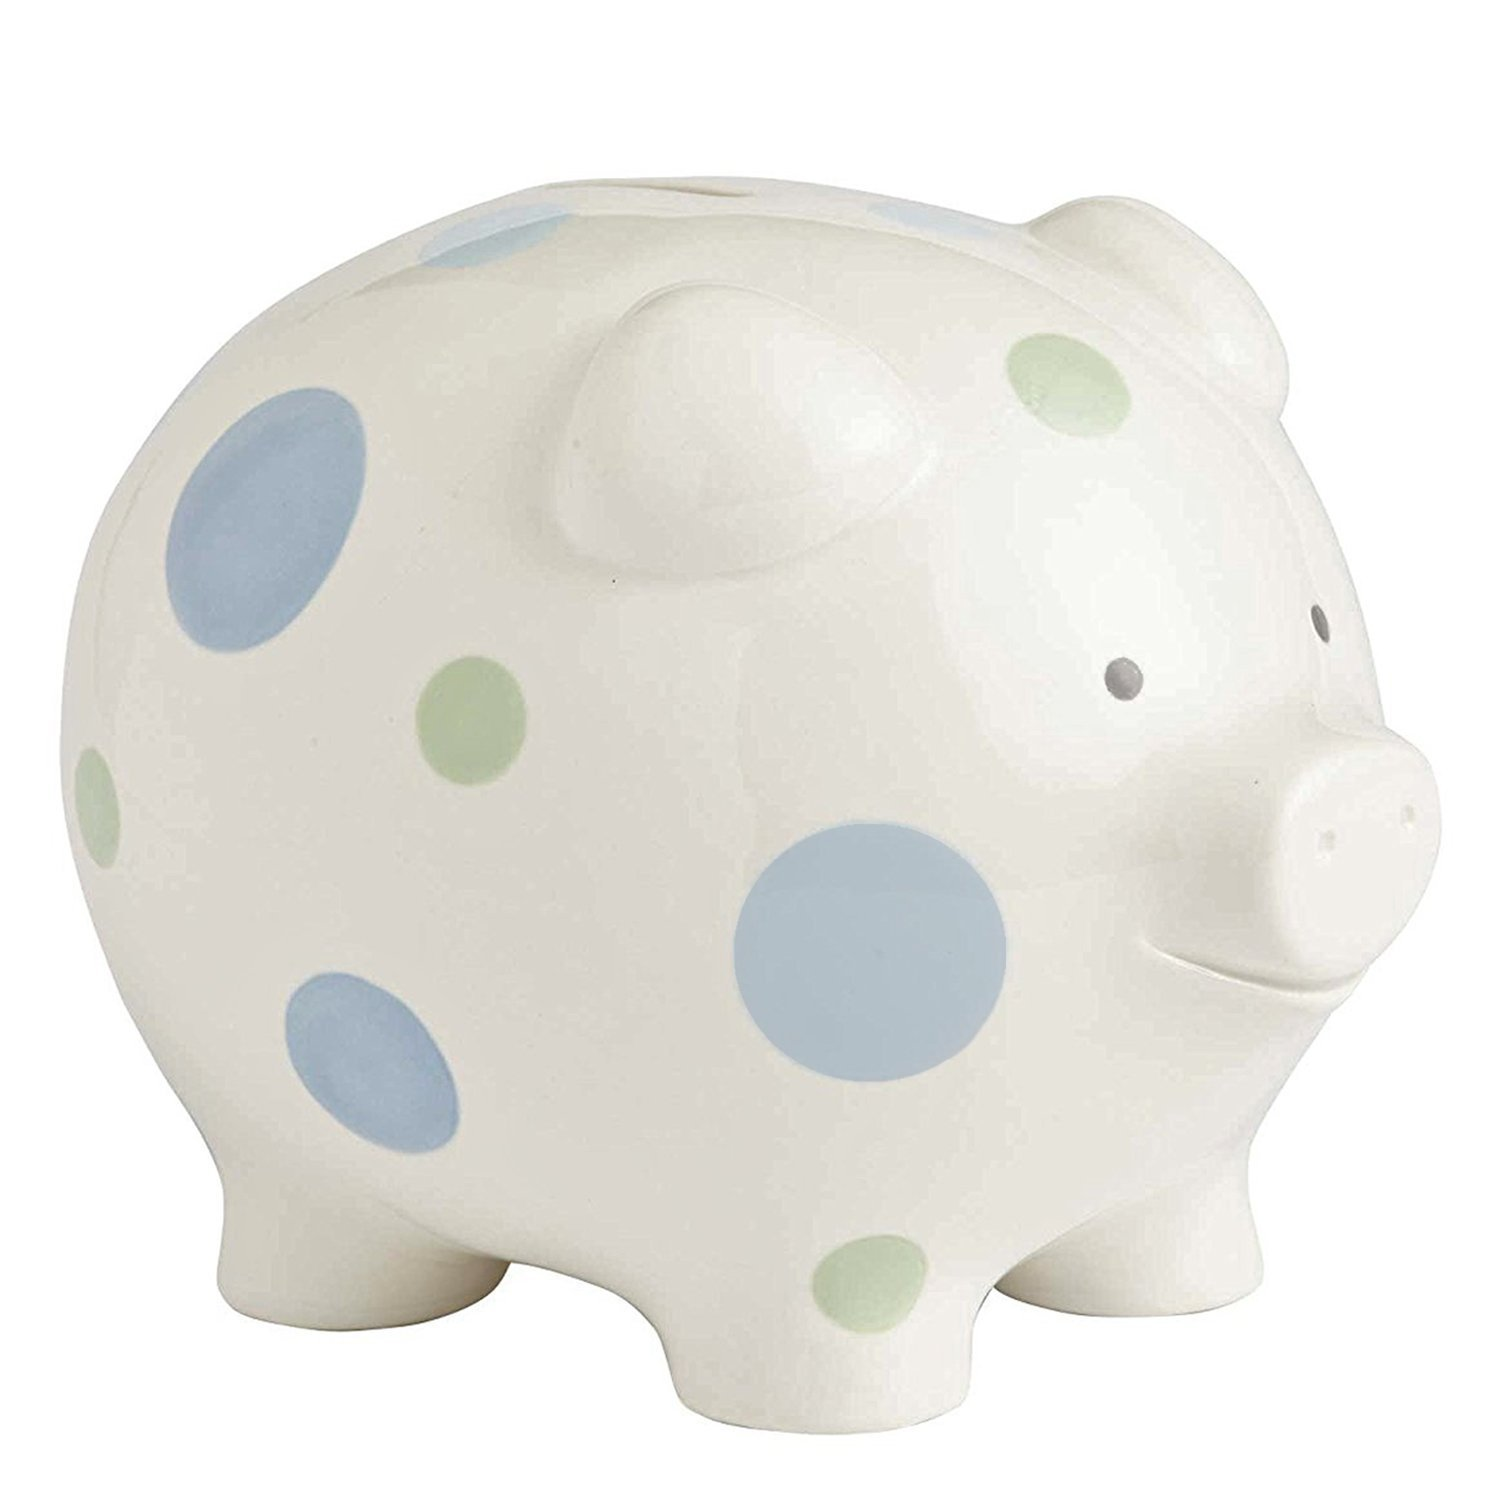 Beginnings by Enesco Big Polka Dot Piggy Bank, 7 inches, ...